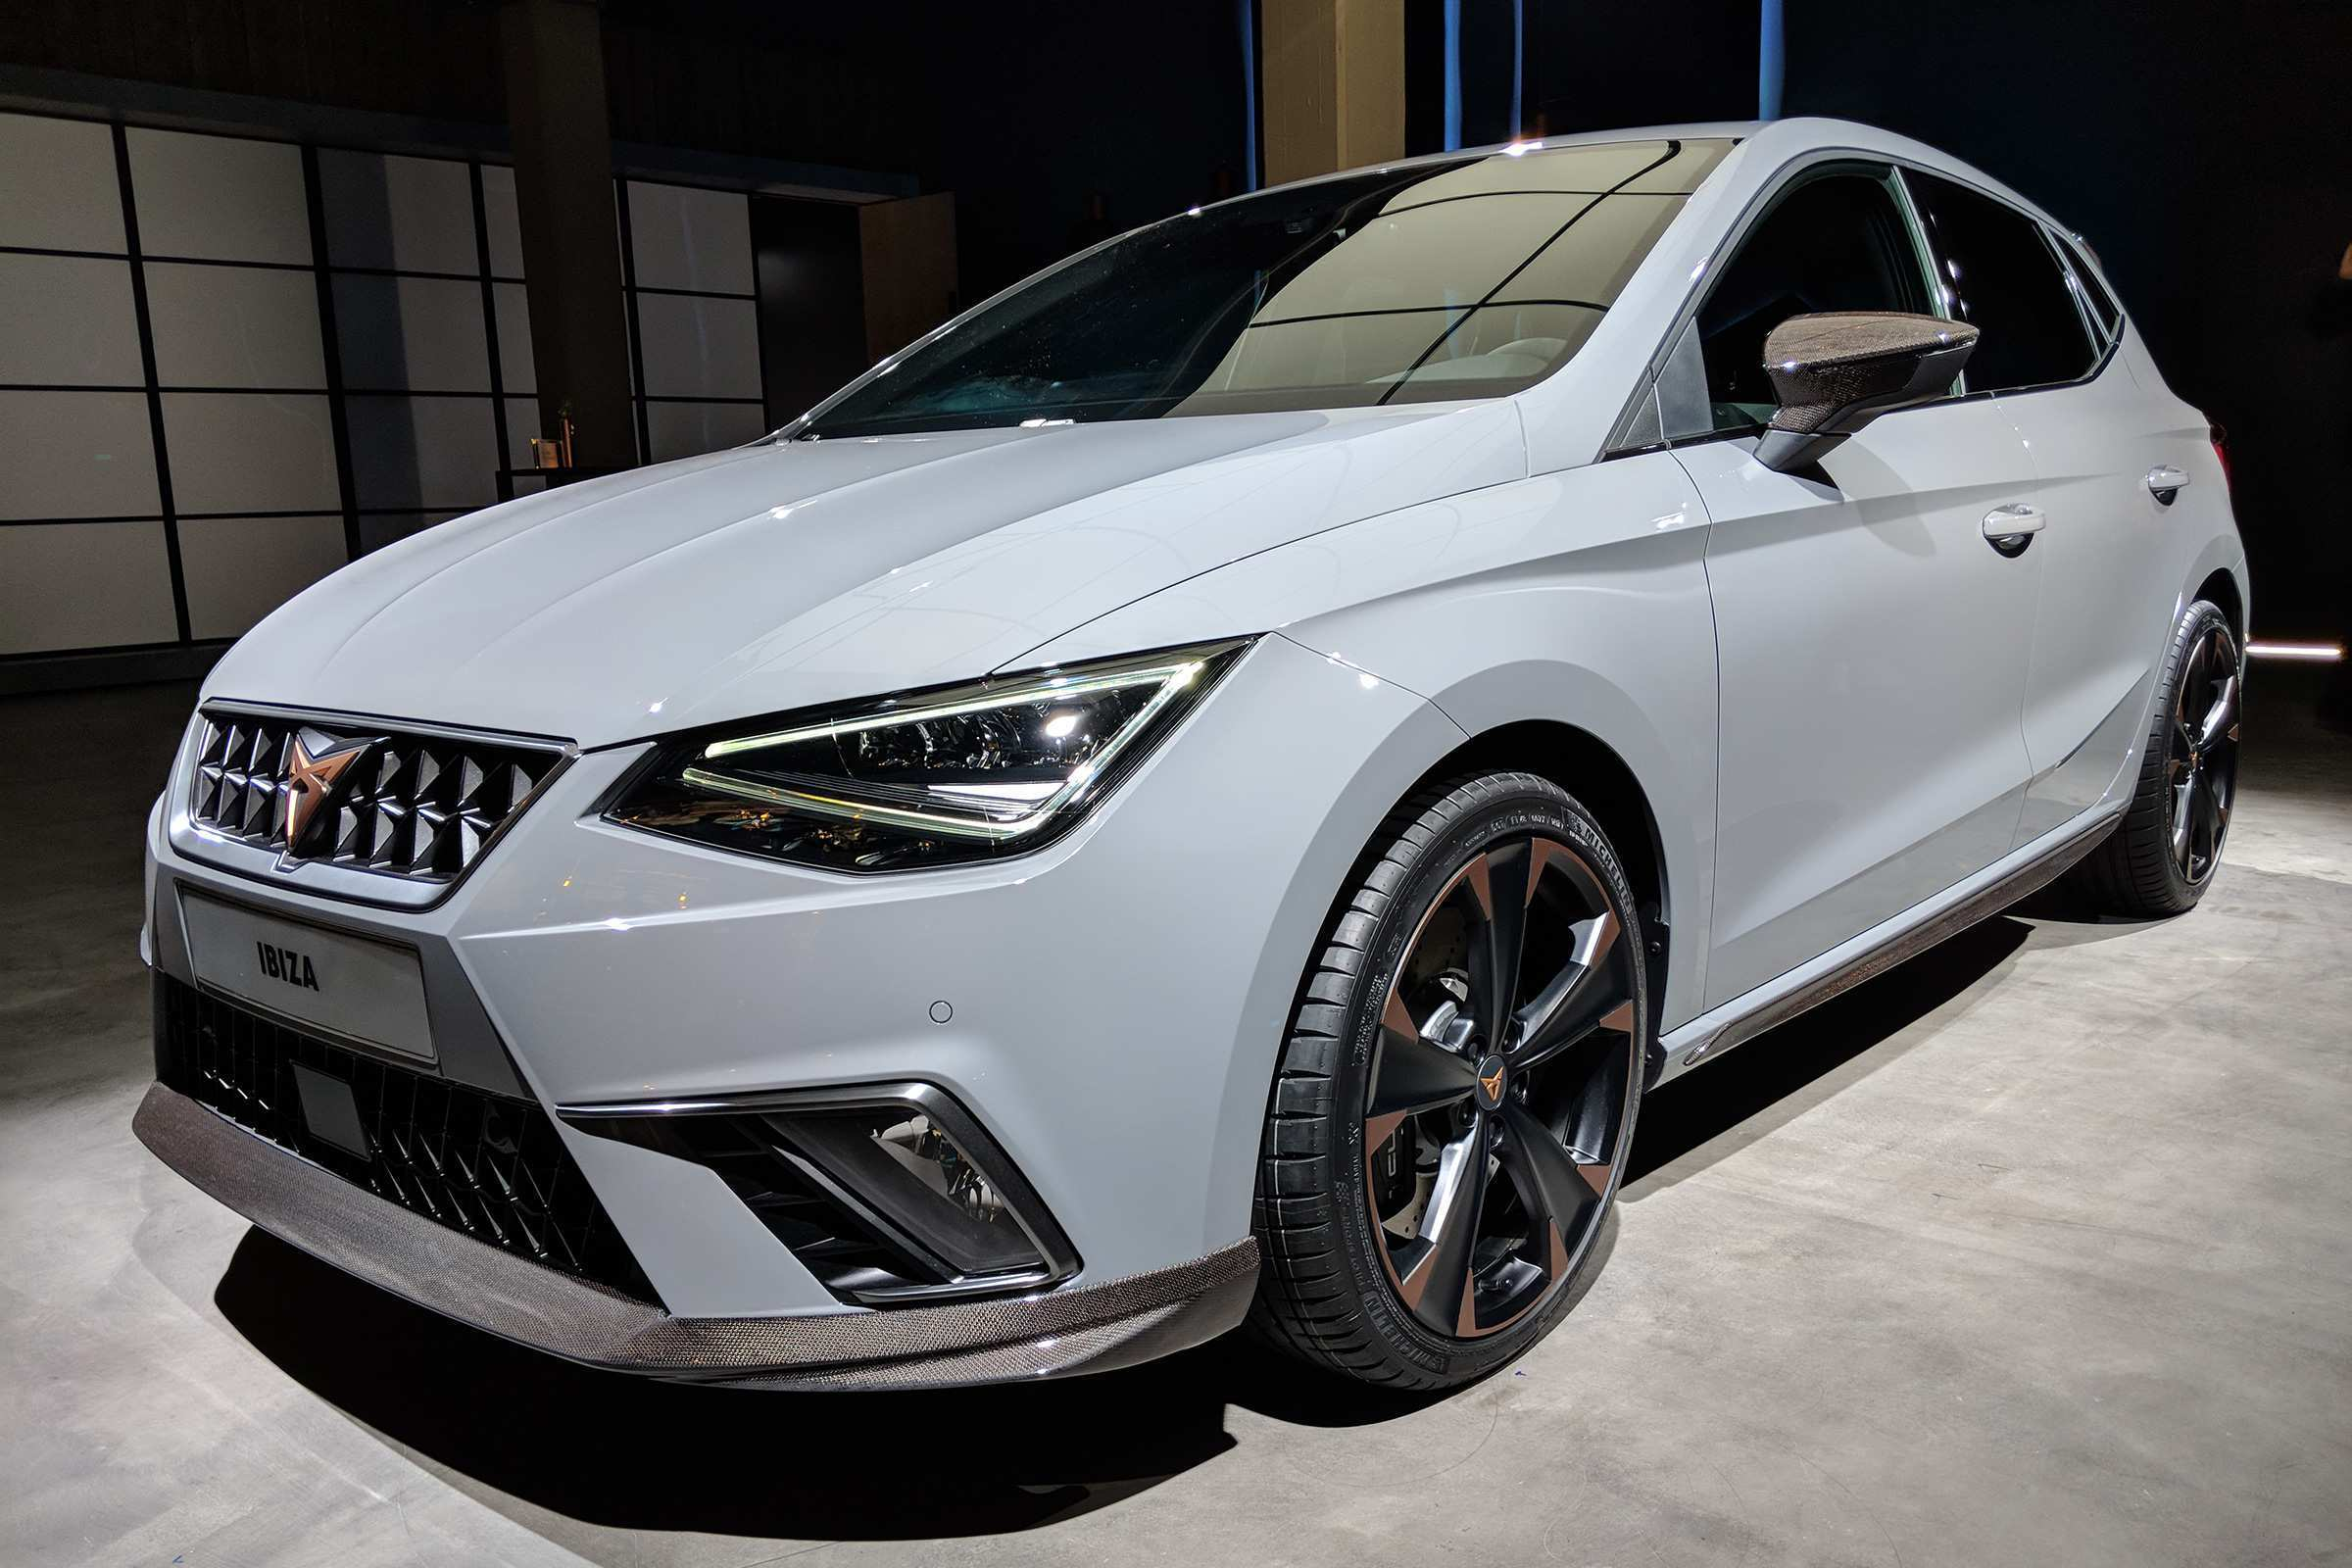 86 All New 2020 Seat Ibiza 2018 Concept with 2020 Seat Ibiza 2018